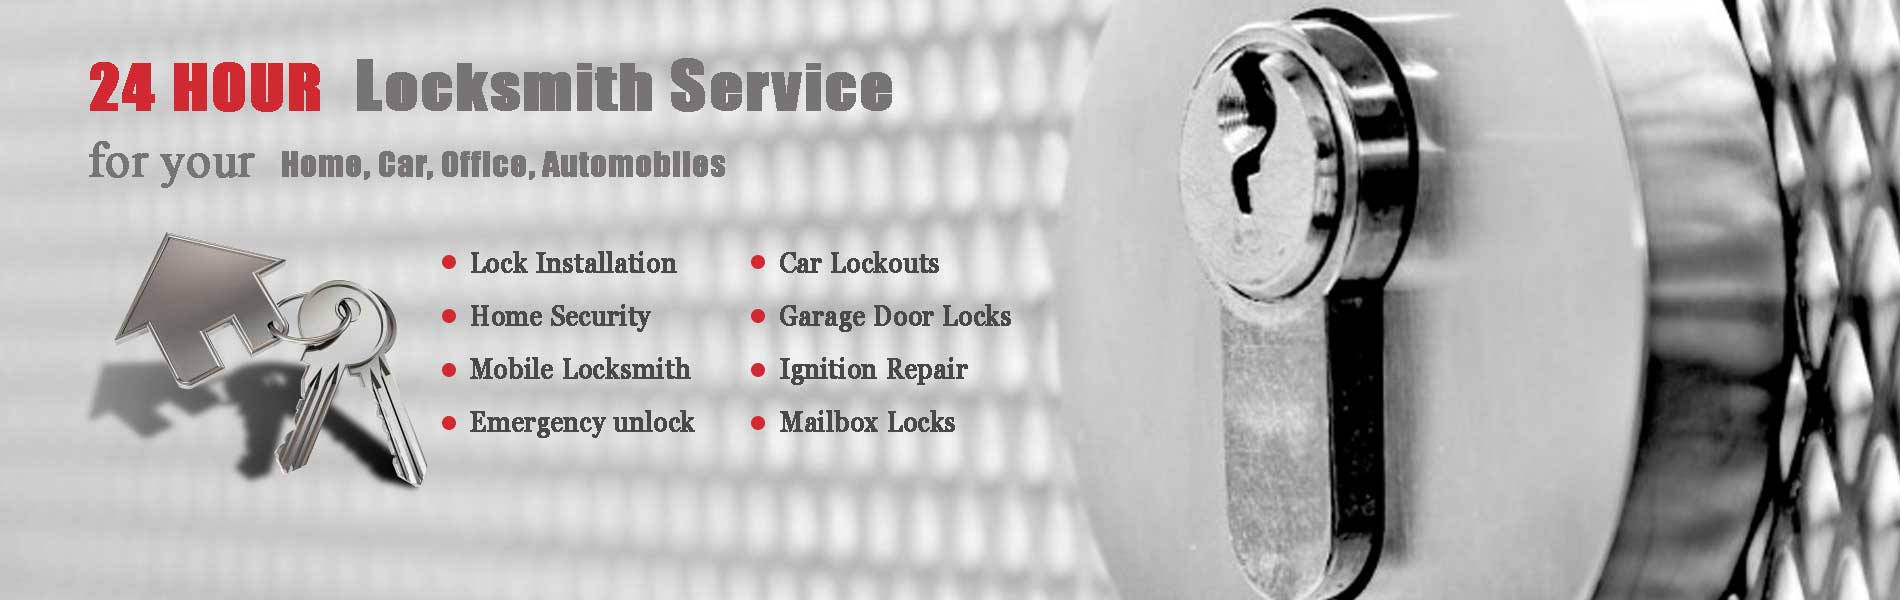 North Ridgeville Locksmith Store, North Ridgeville, OH 440-653-8249